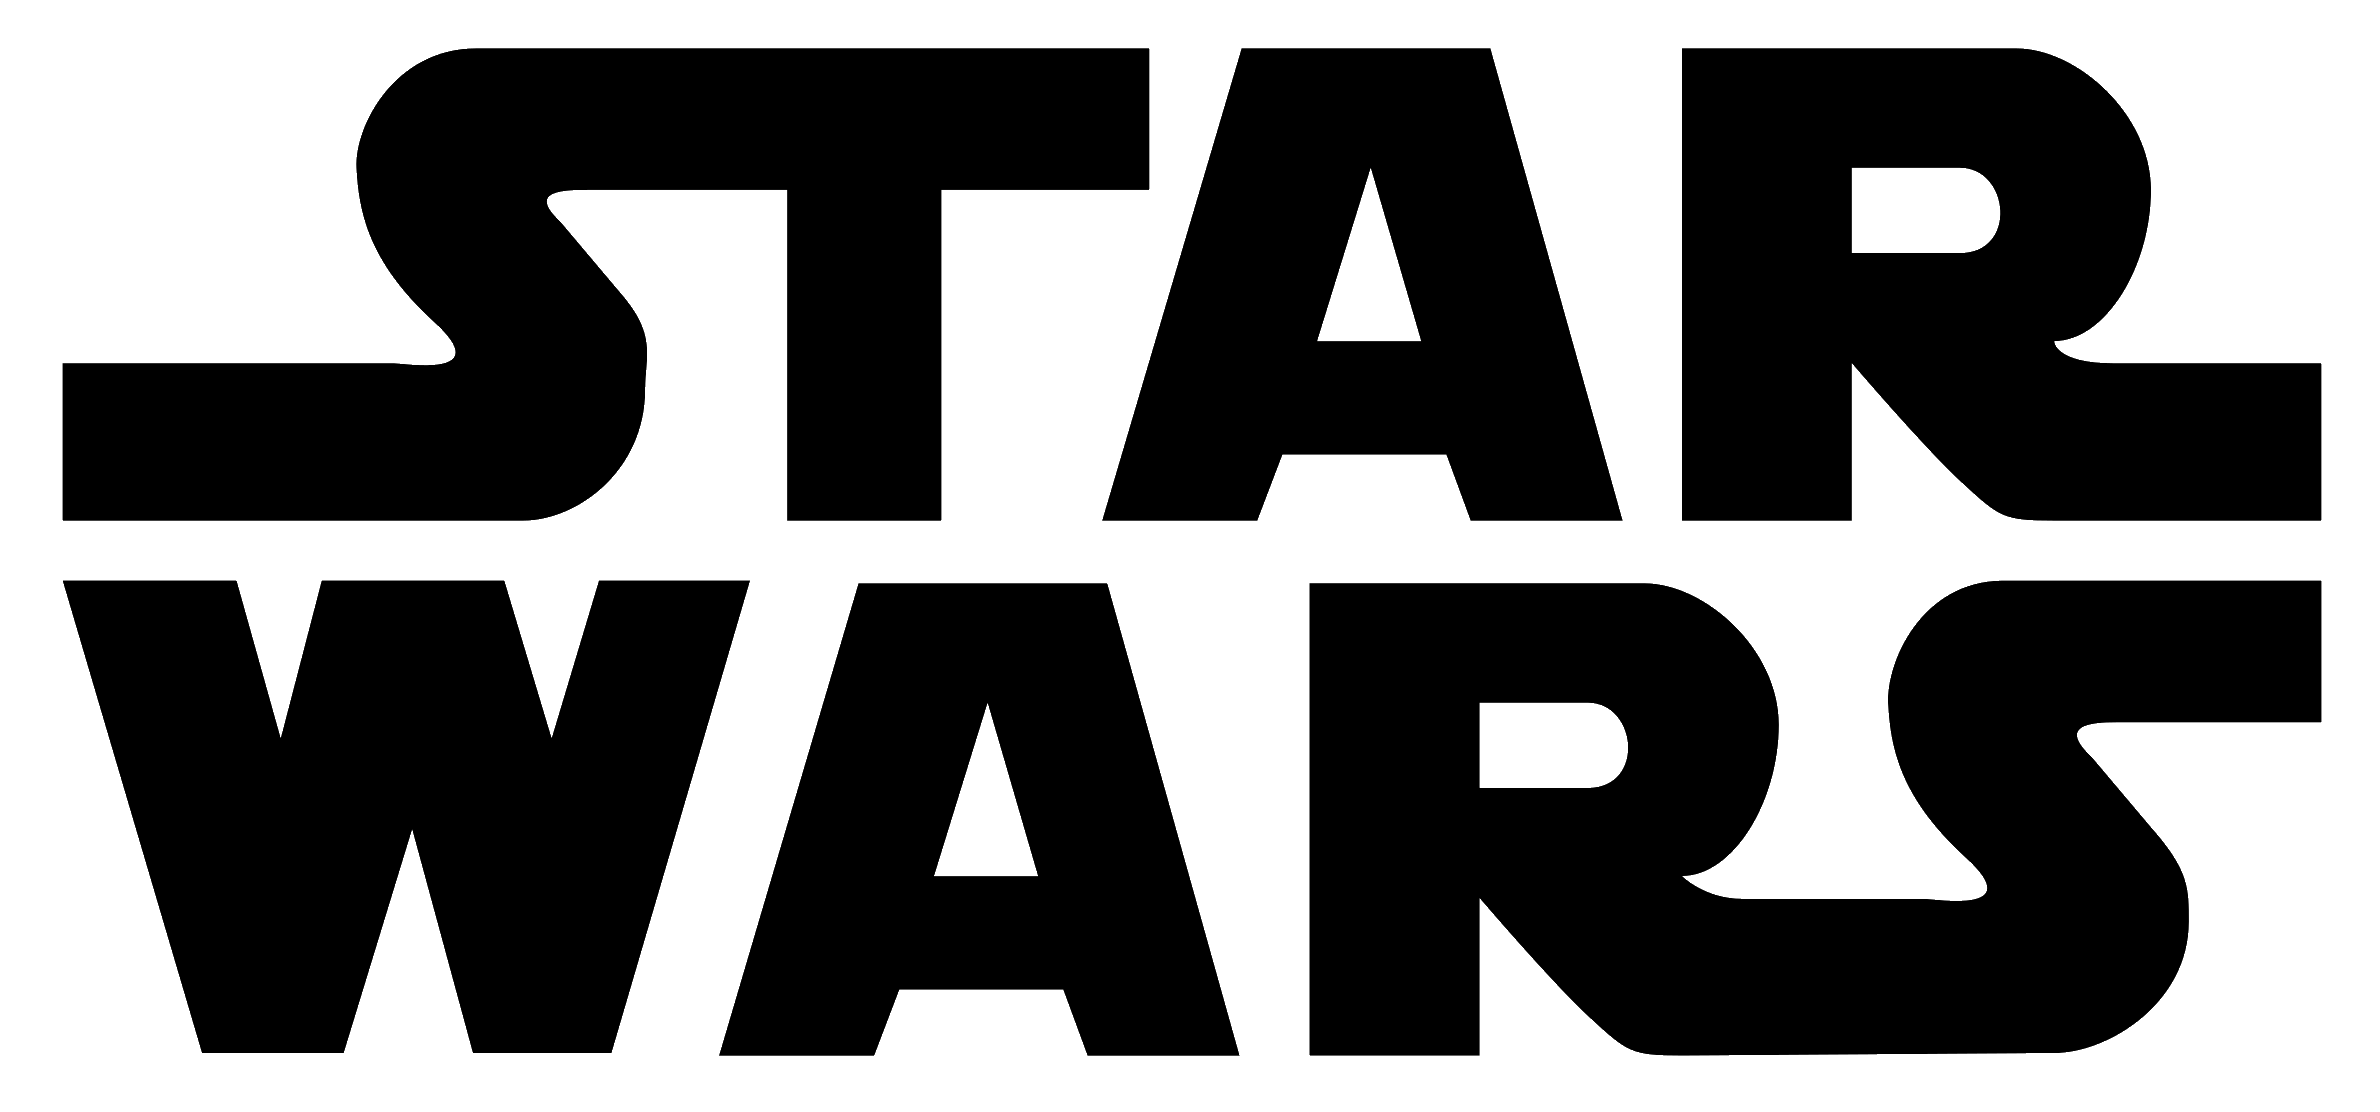 Star Wars Episode IX - the Rise of Skywalker (2019) logo png transparent